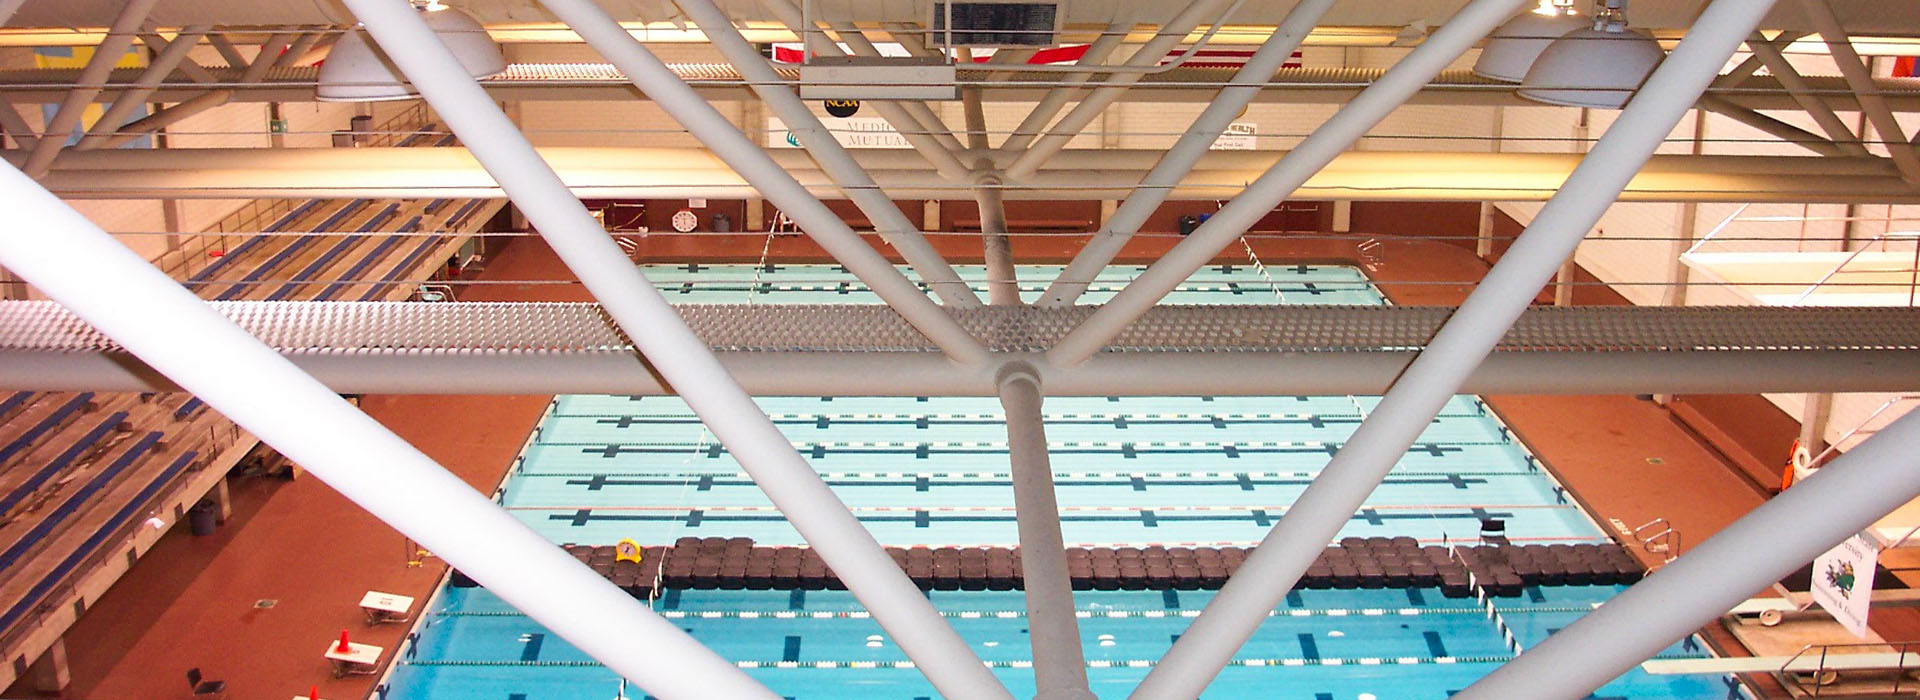 CSU-Pool-Above-Rafters-1920x700